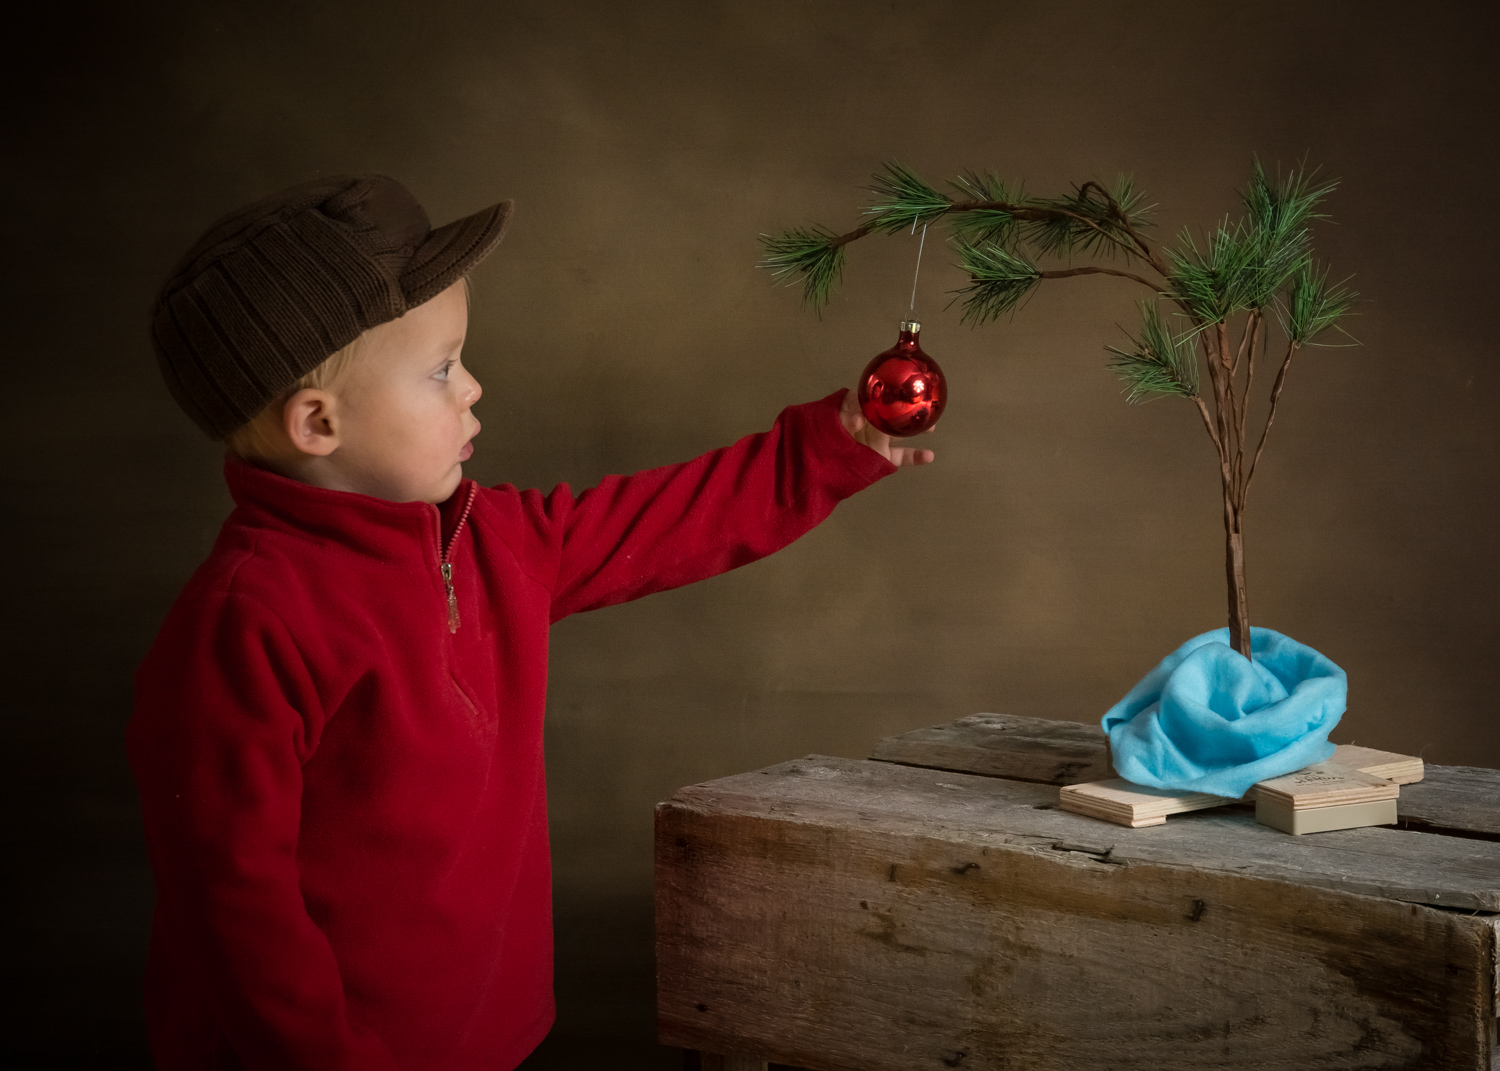 Image: Having learned about light and the nature of toddlers, I decided to create a portrait that I...